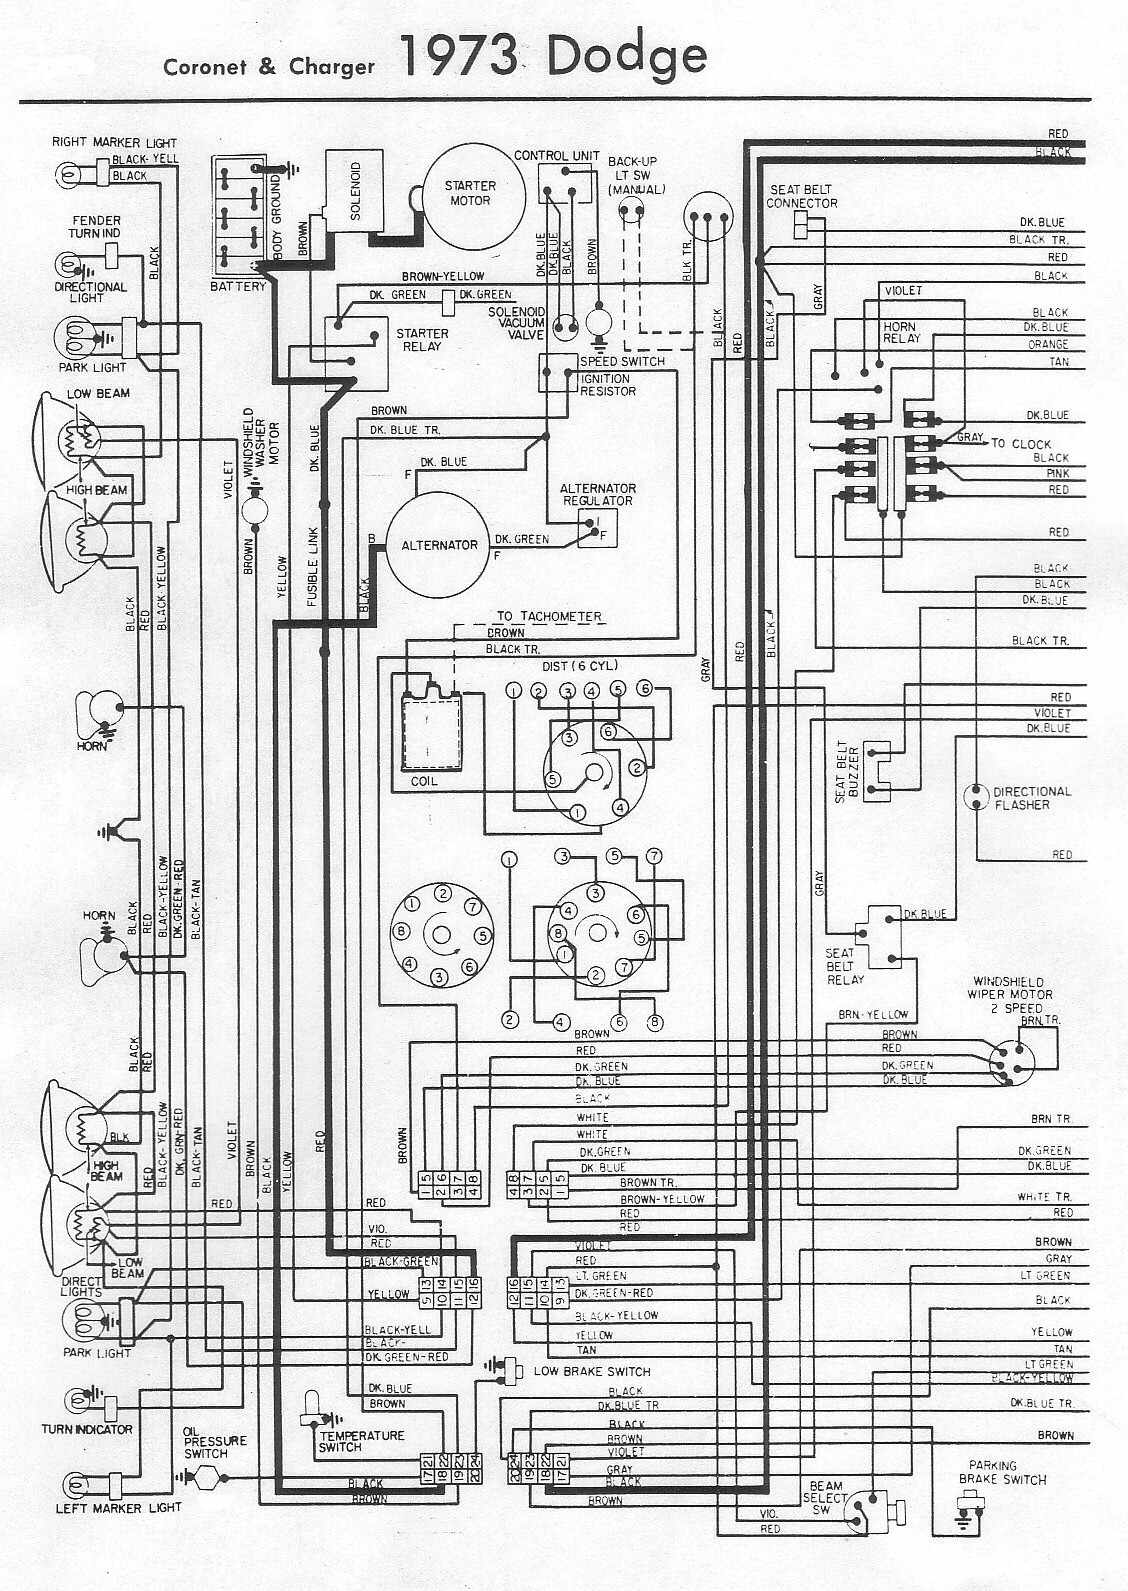 1973 Dodge Charger Fuse Box Wiring Diagram Wiring Diagram For Dodge Charger Fuse  Box 1973 Dodge Challenger Fuse Box